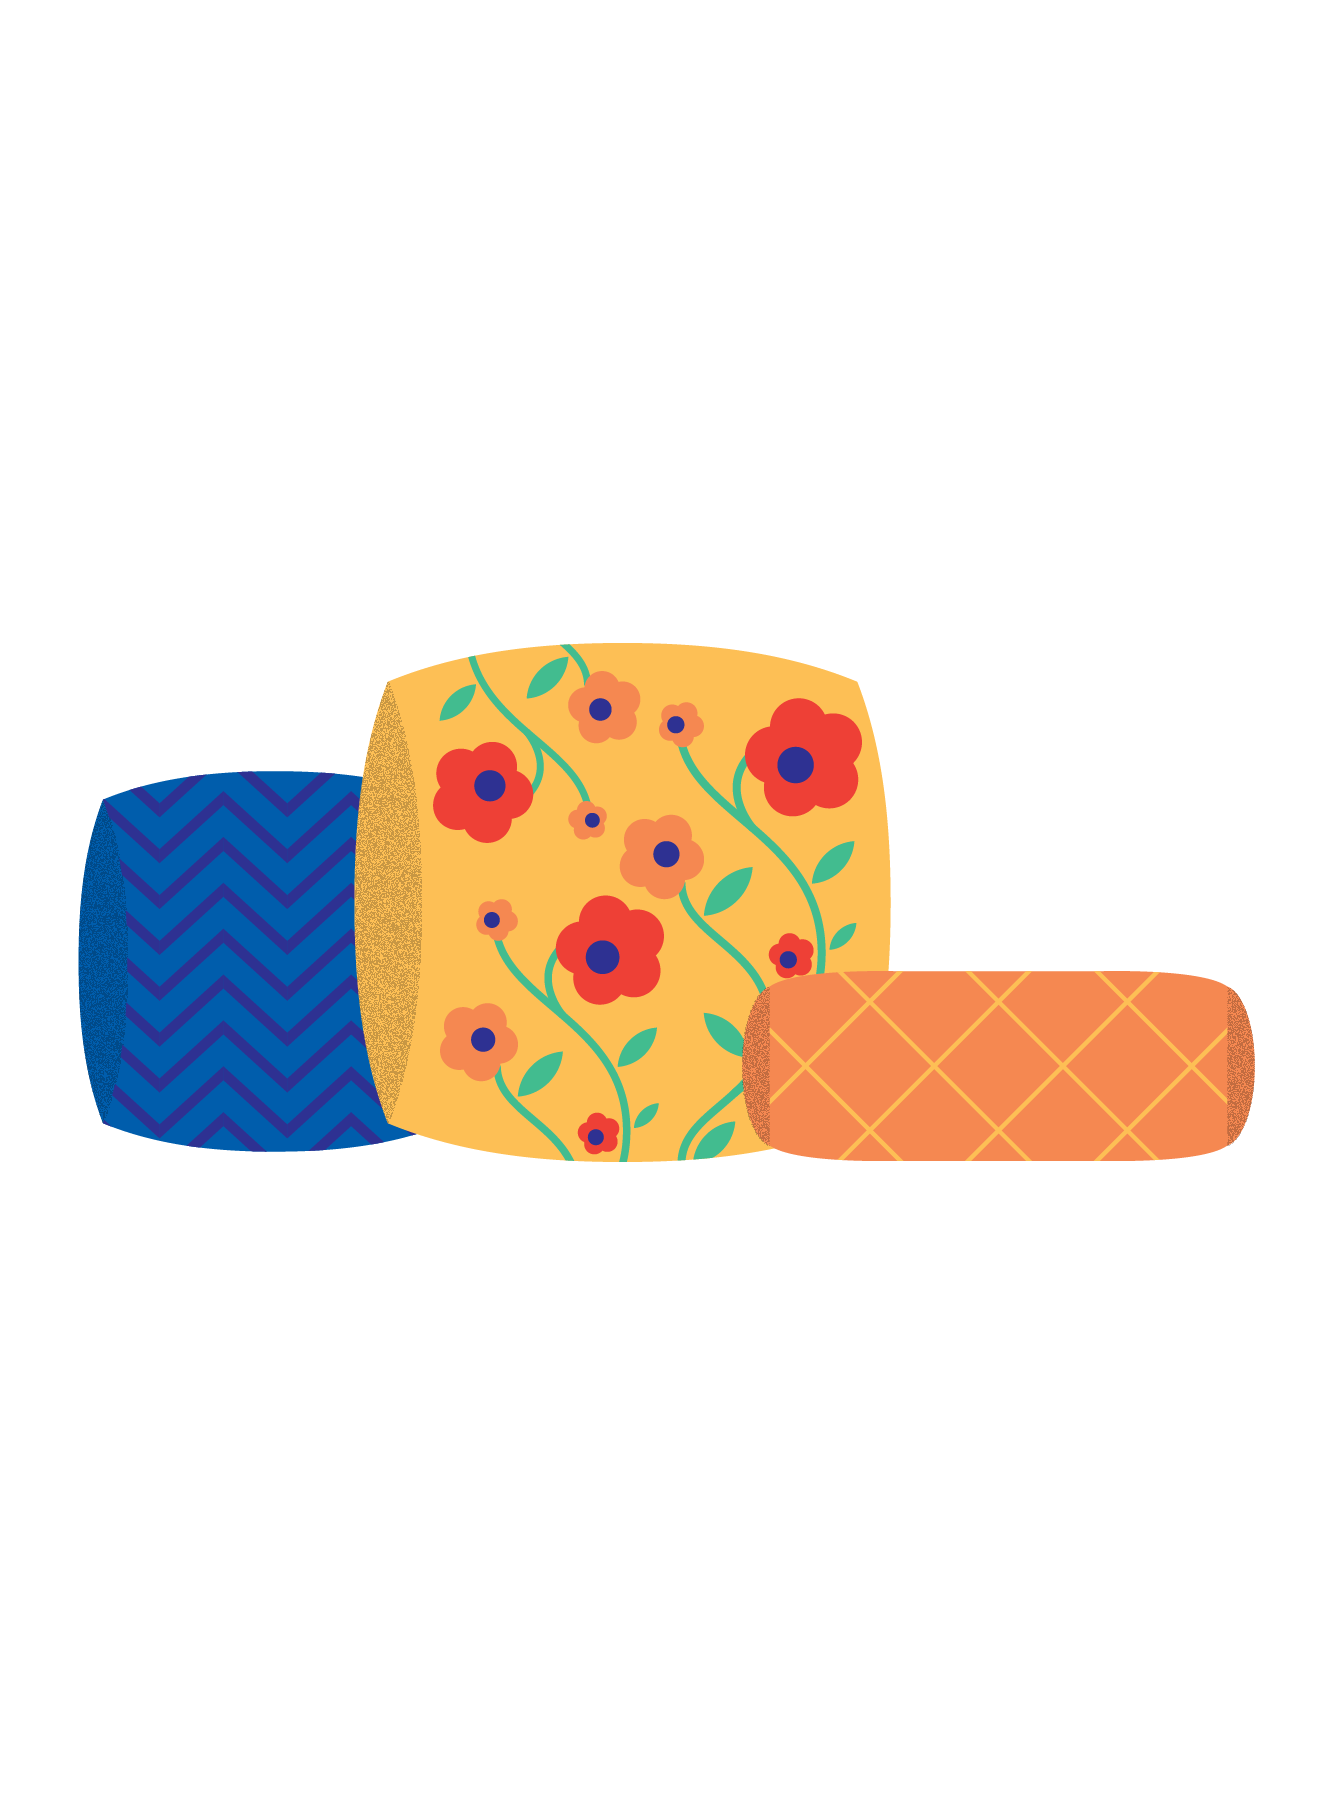 Illustration of pillows